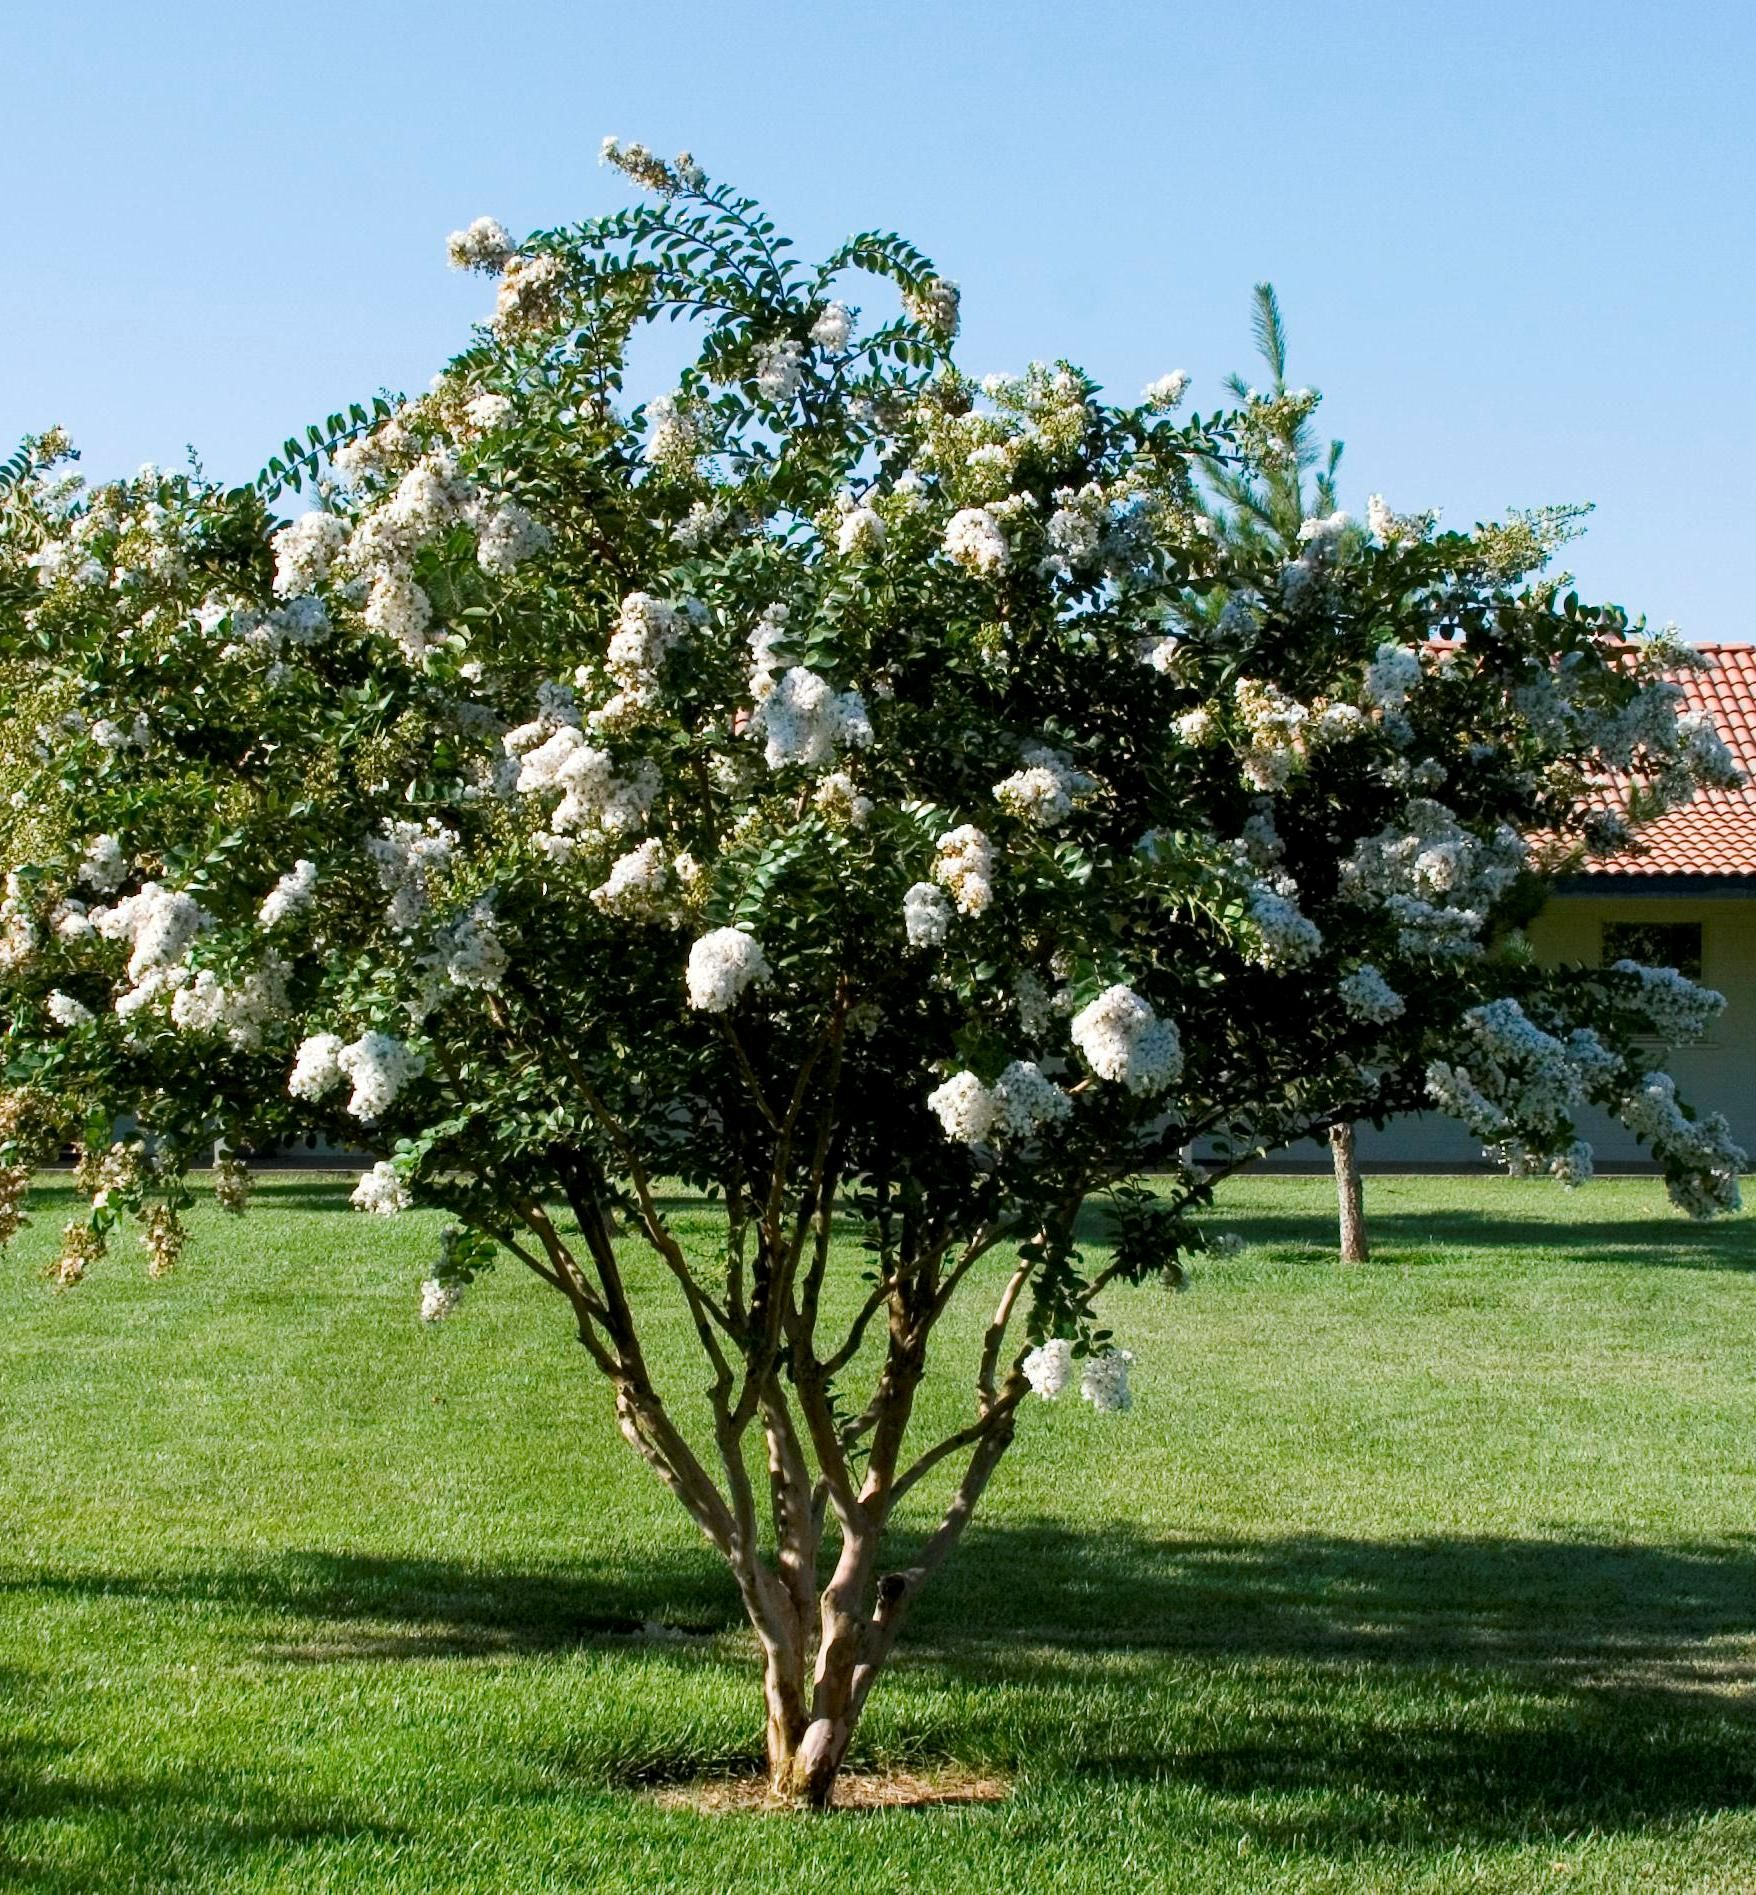 (1 Gallon) Acora White Crape Myrtle, Georgeous clusters of pure white, crinkled flowers, amazing dwarf crape mrytle that serves as a large shrub or small tree with a weeping form, rich fall color,